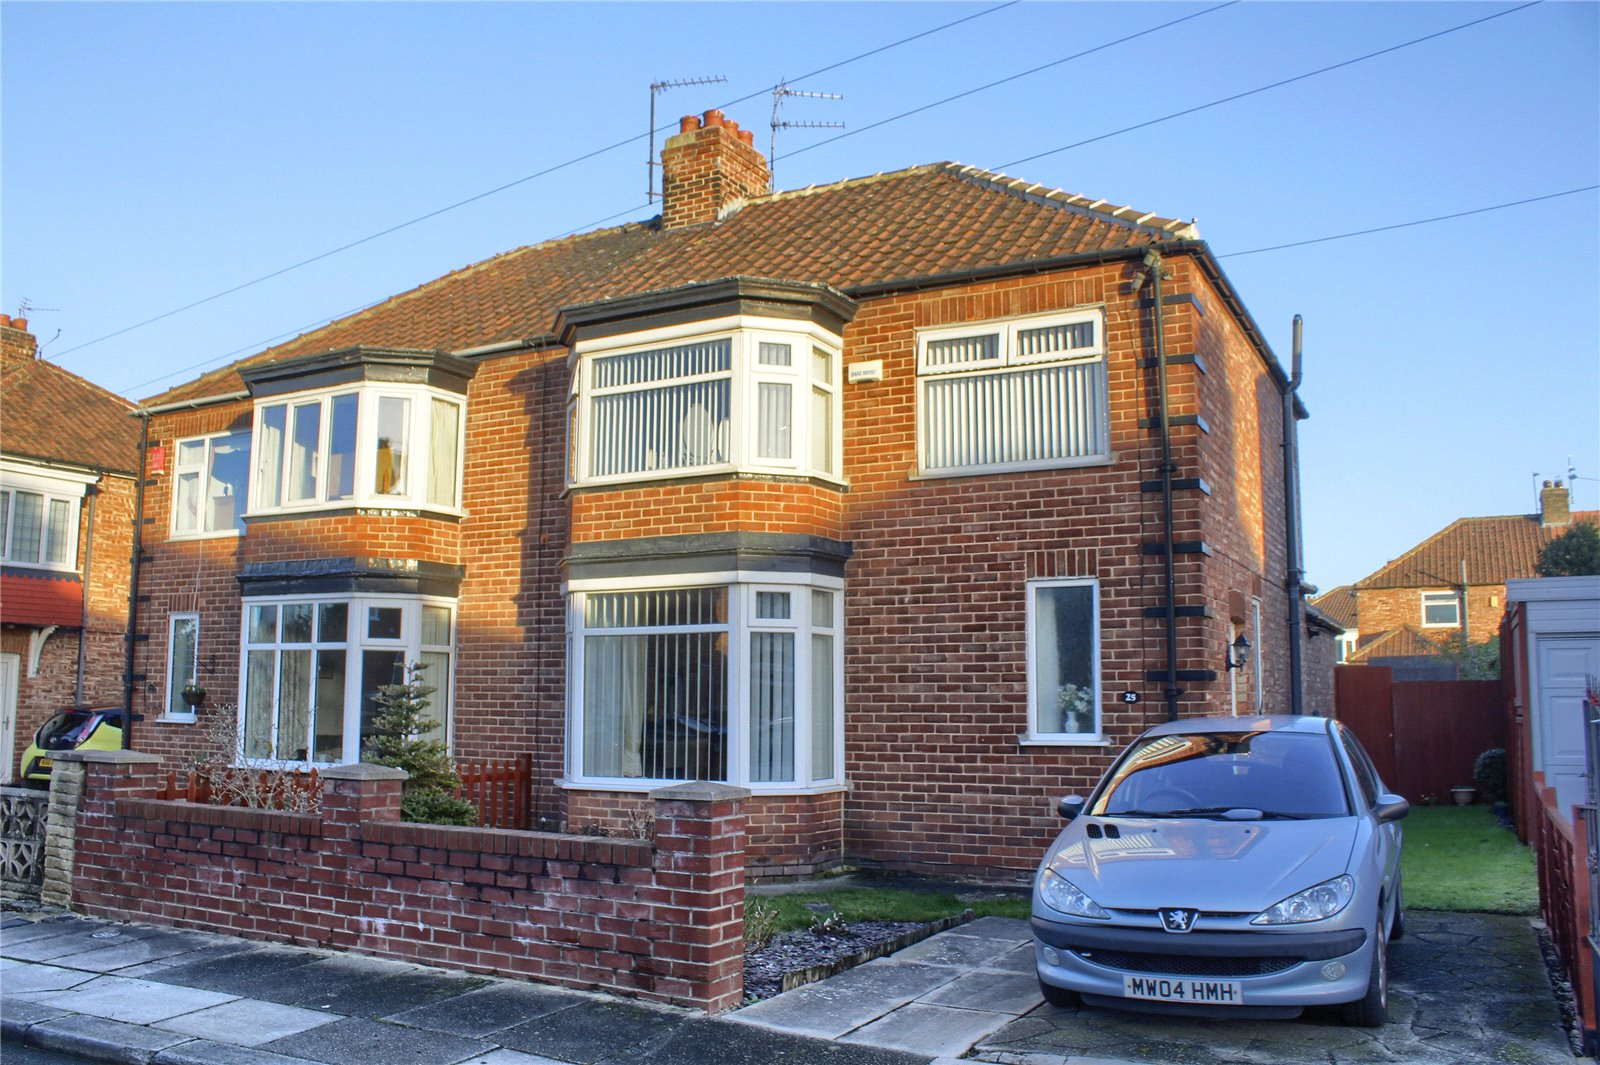 3 bed house for sale in Benton Road, Tollesby 1